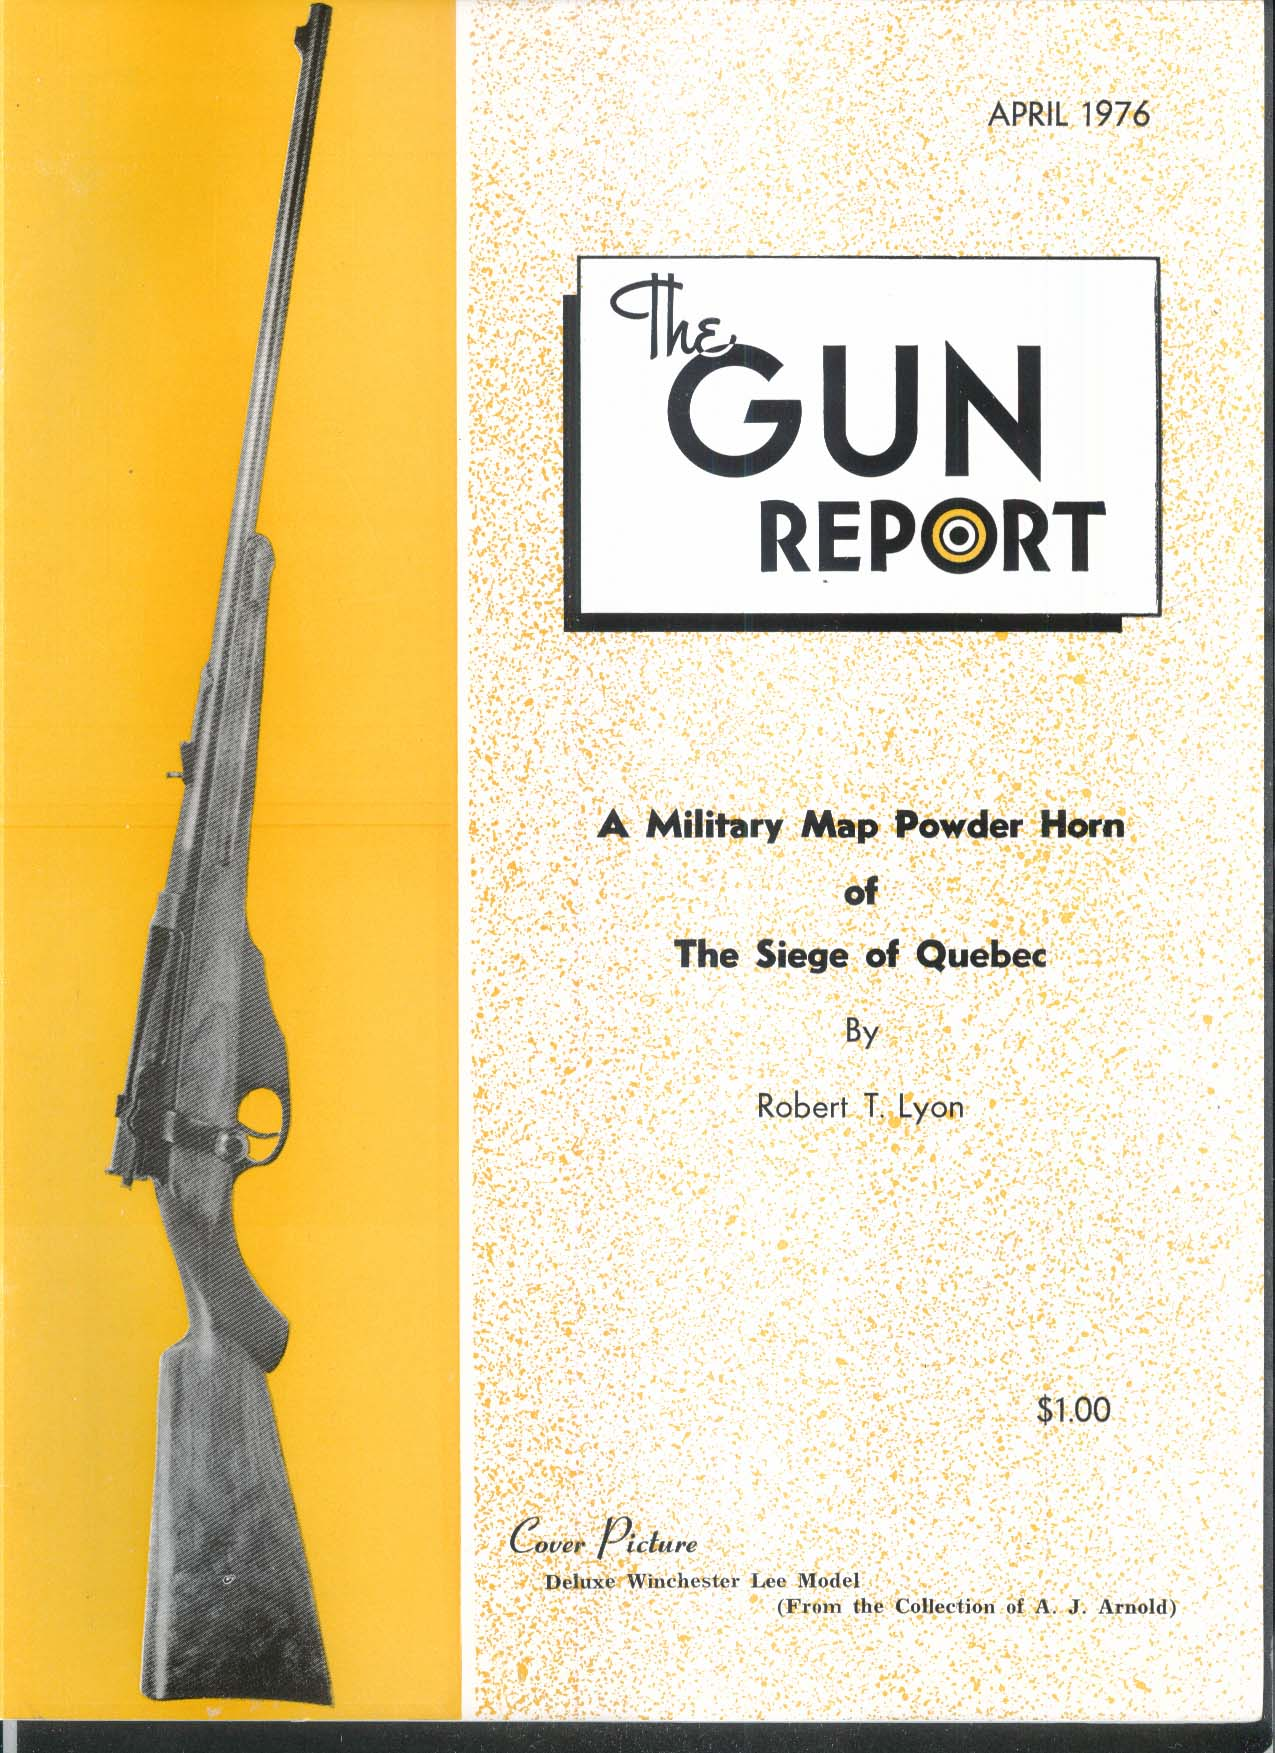 GUN REPORT Deluxe Winchester Lee Model Siege of Quebec 4 1976